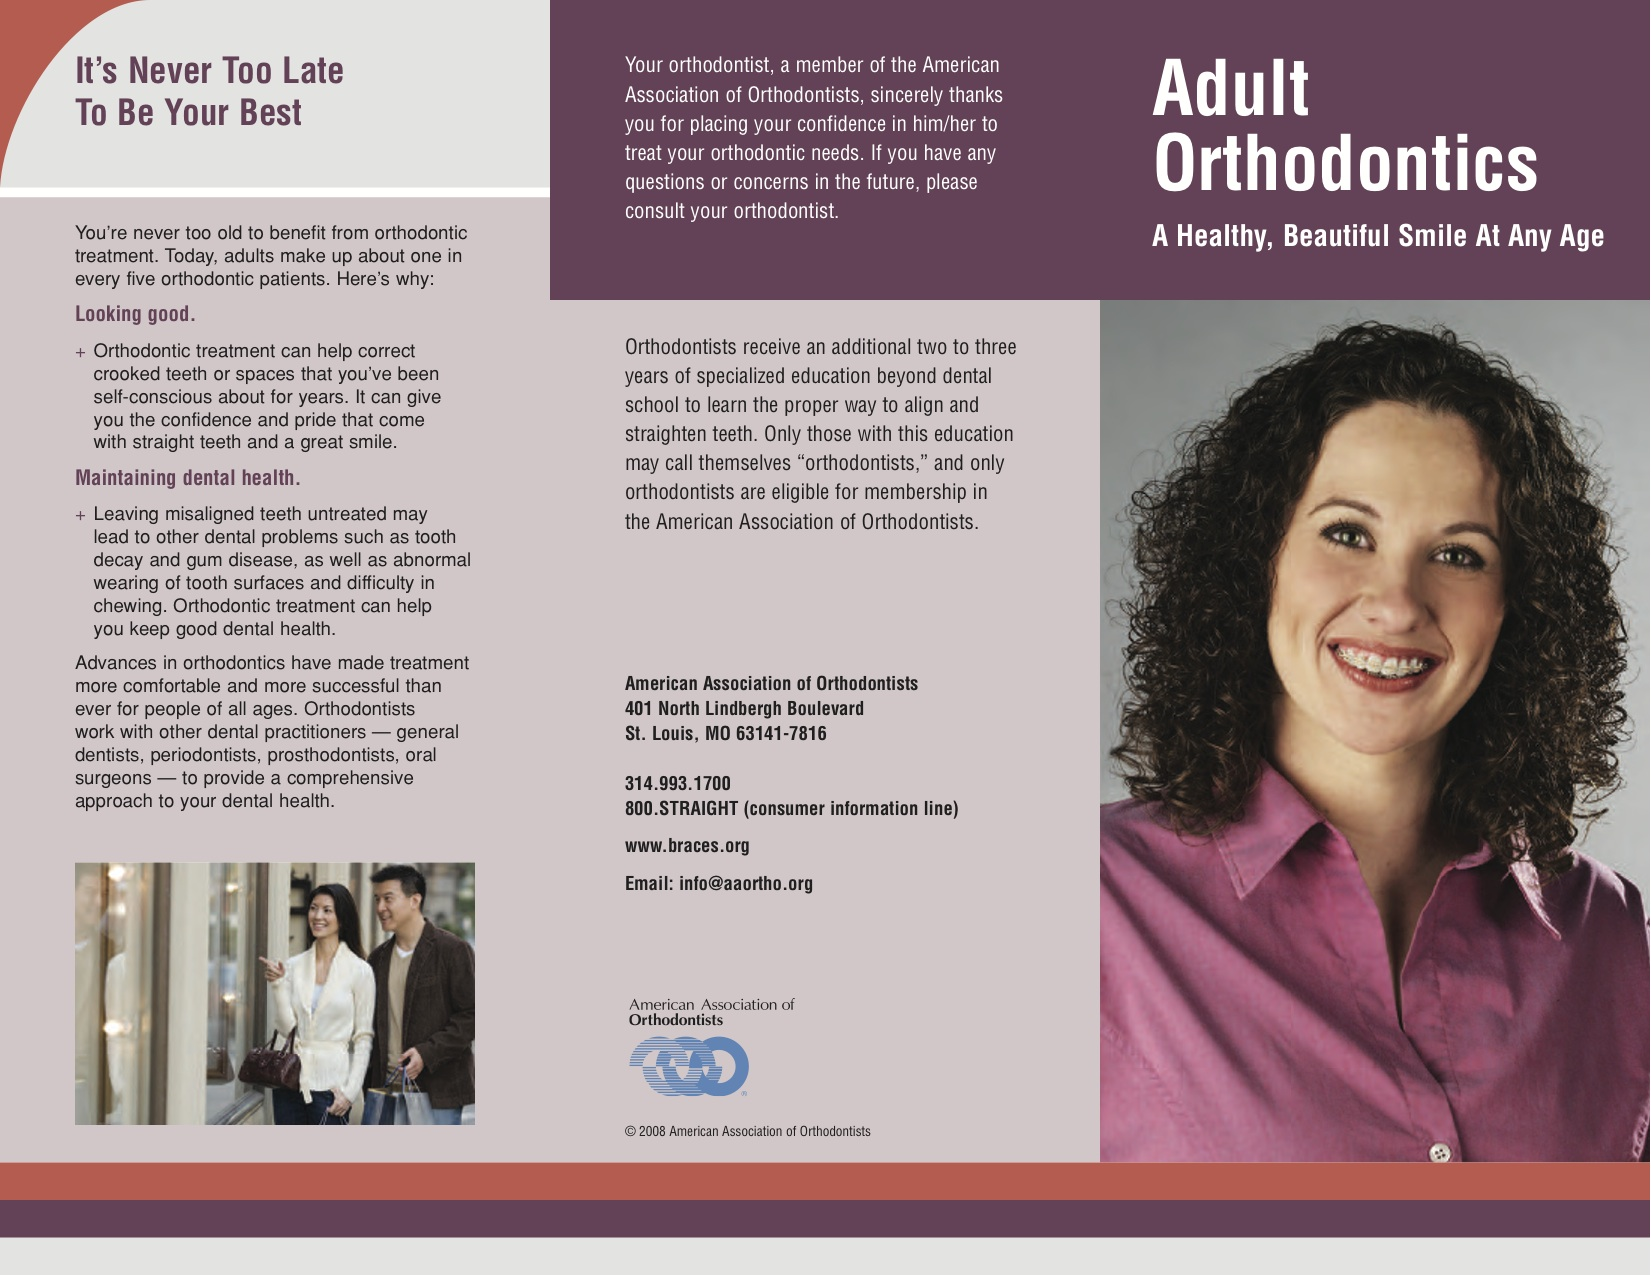 AAO- Adult Orthodontics